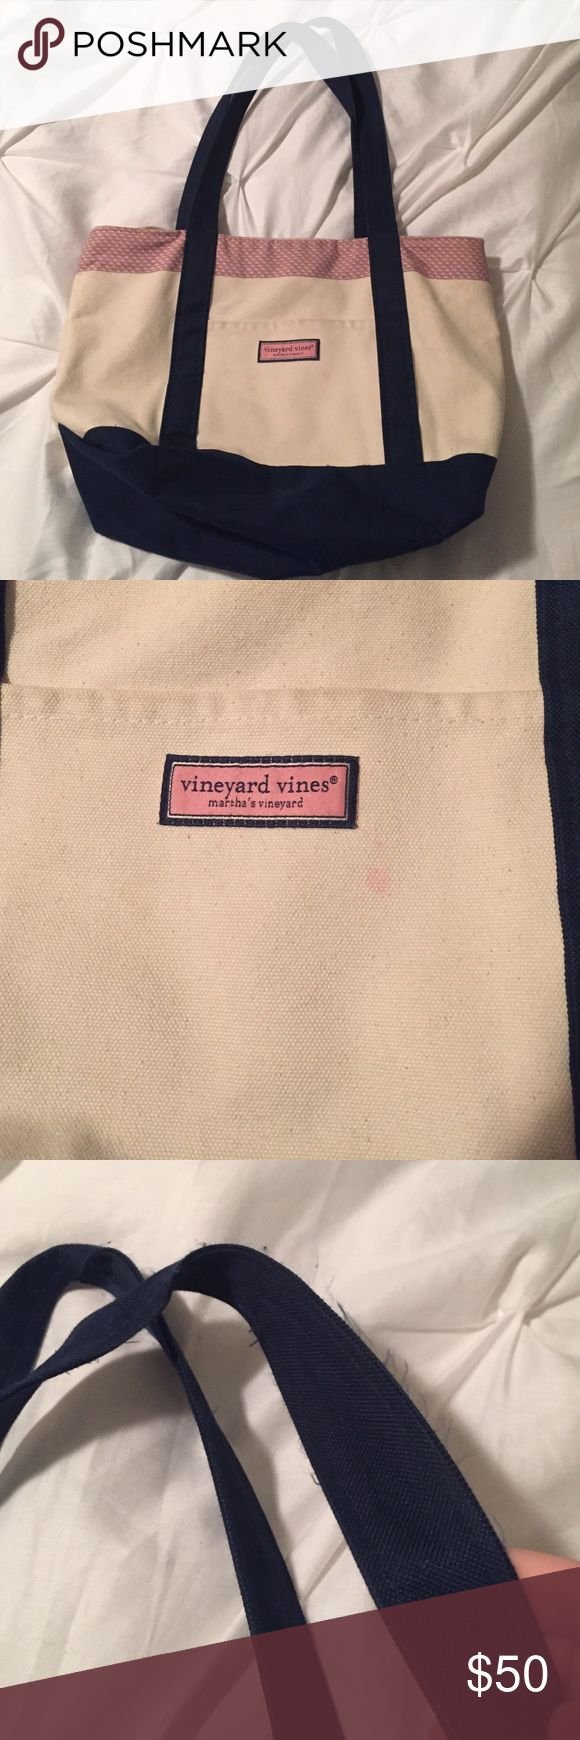 """Vineyard Vines Classic Whale Tote Vineyard Vines tote with a few signs of wear as pictured. There is a small barely noticeable pink mark on the front of the bag, slight fraying around the handles and zipper and a couple of barely noticeable marks inside the bag. Dimensions: 12"""" H x 18"""" W x 6"""" D Vineyard Vines Bags Totes"""